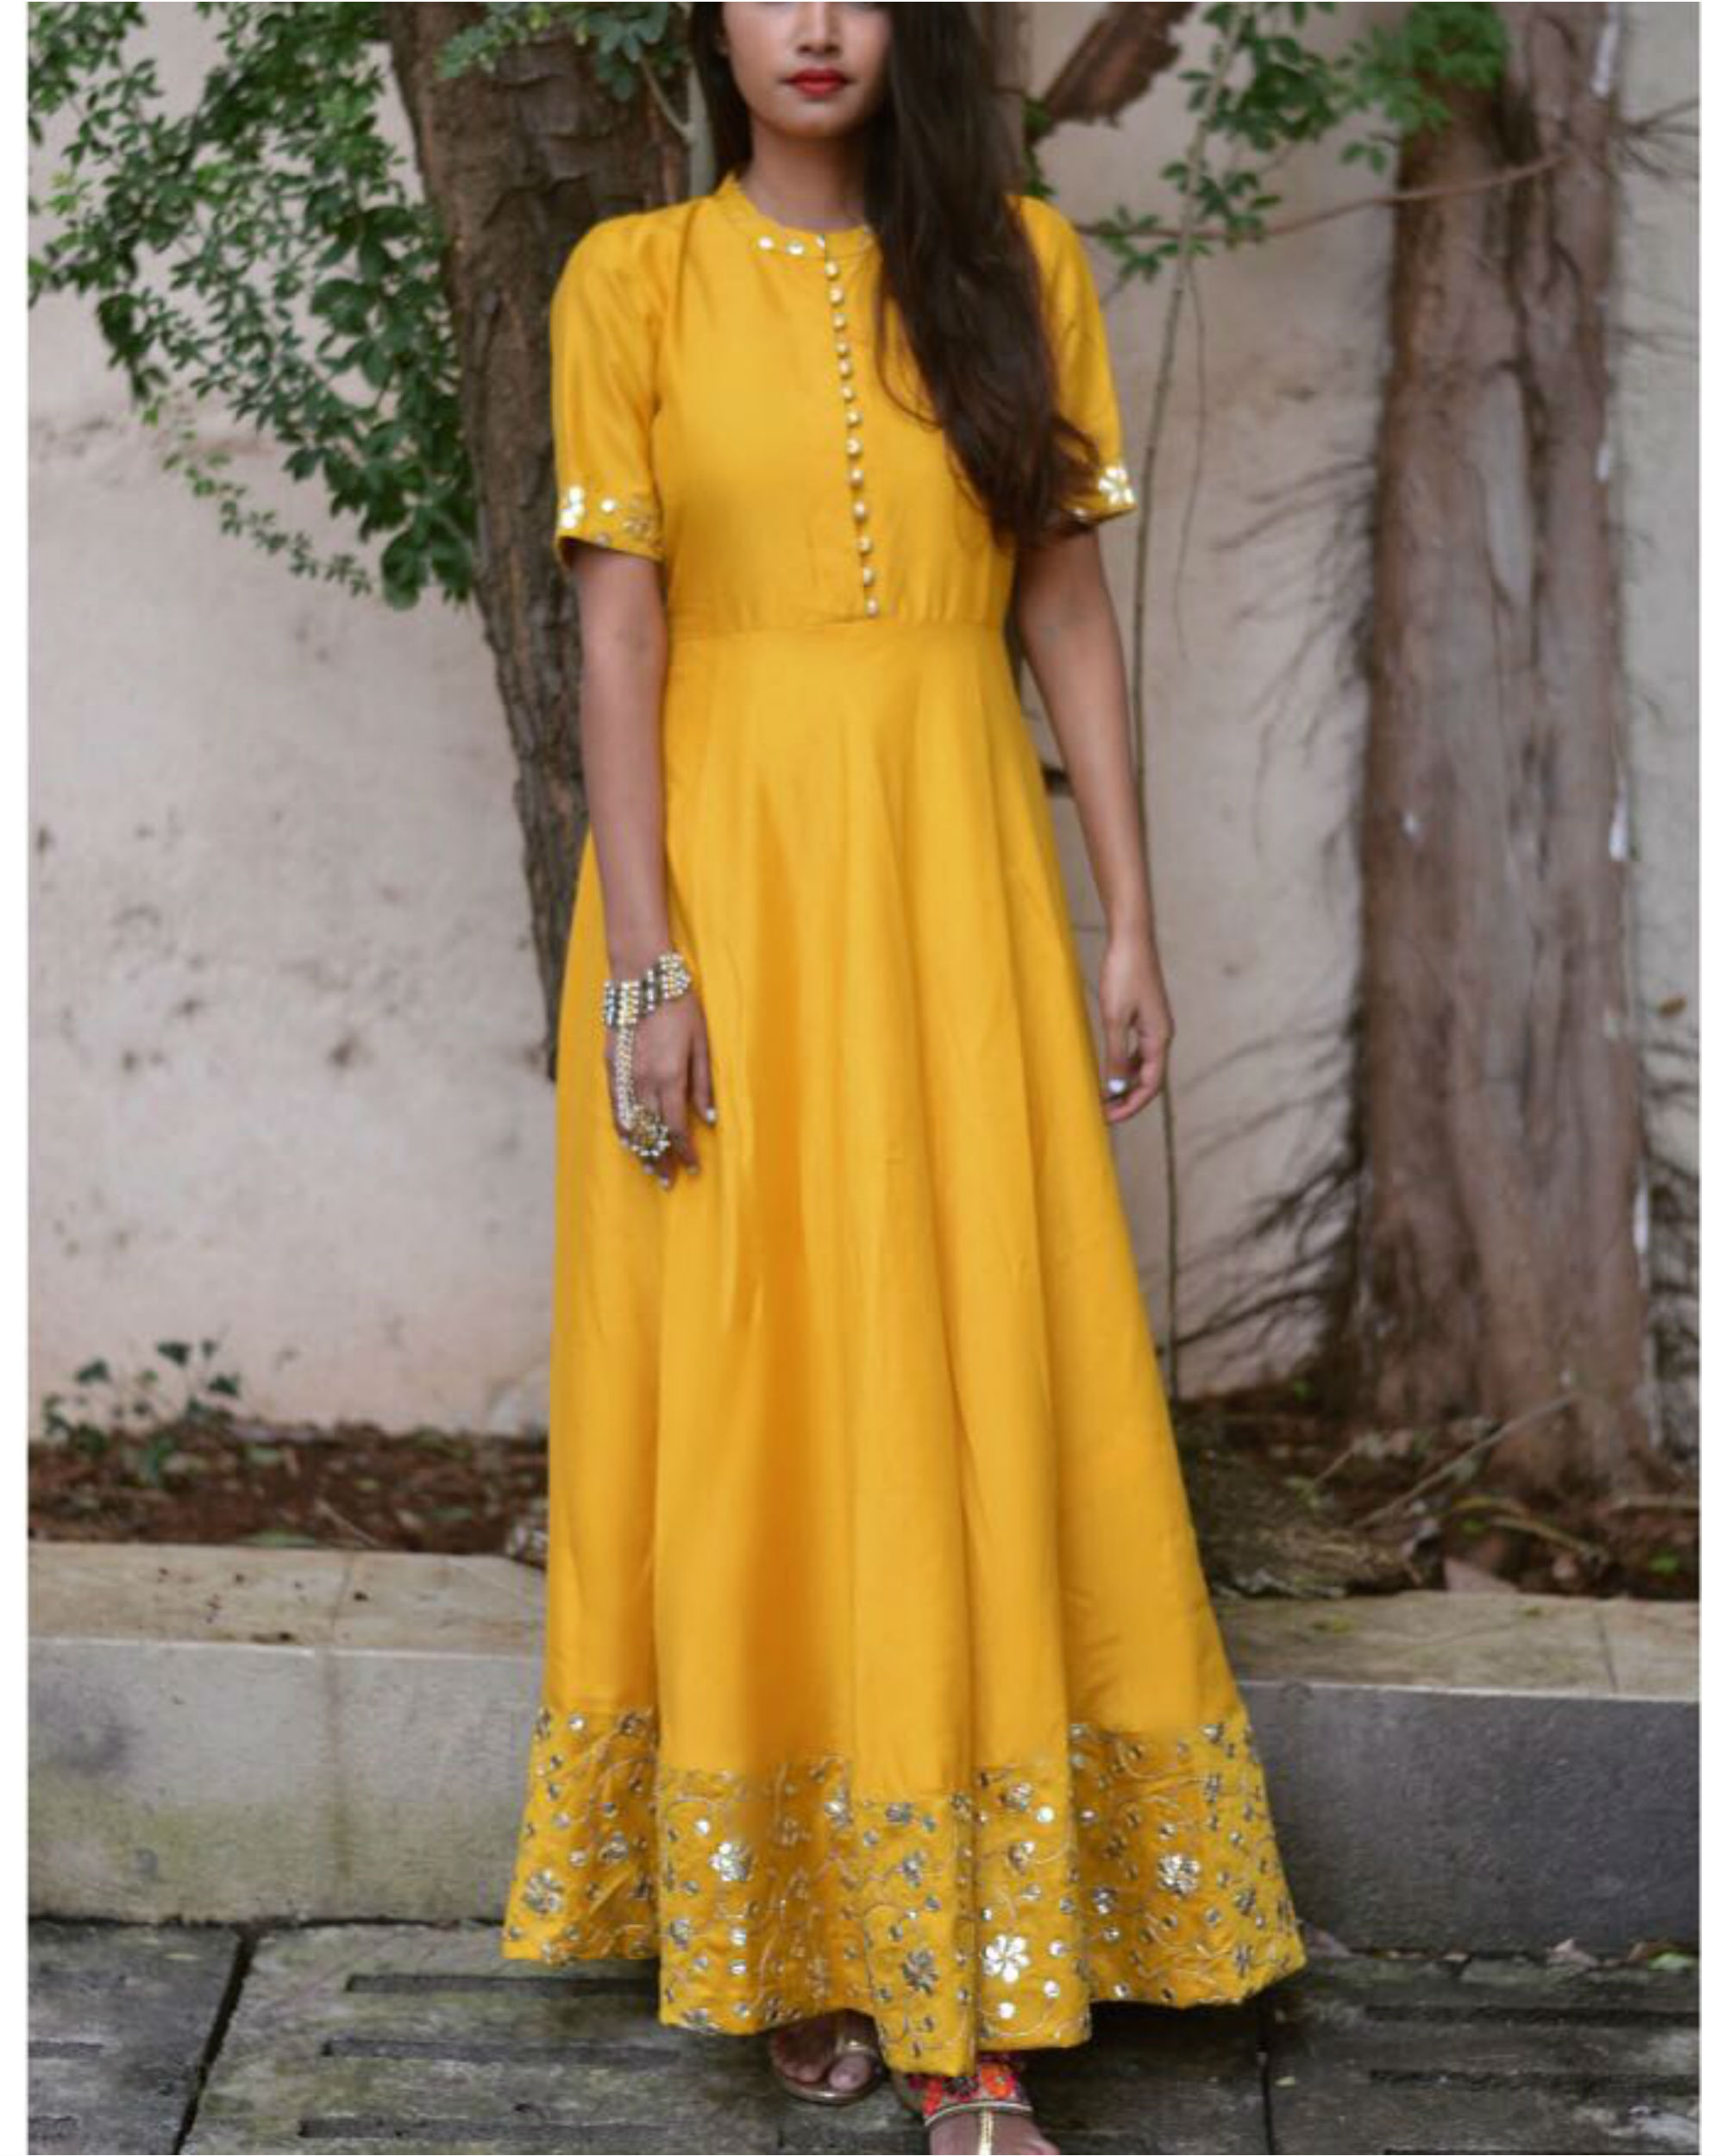 Golden yellow embroidered dress